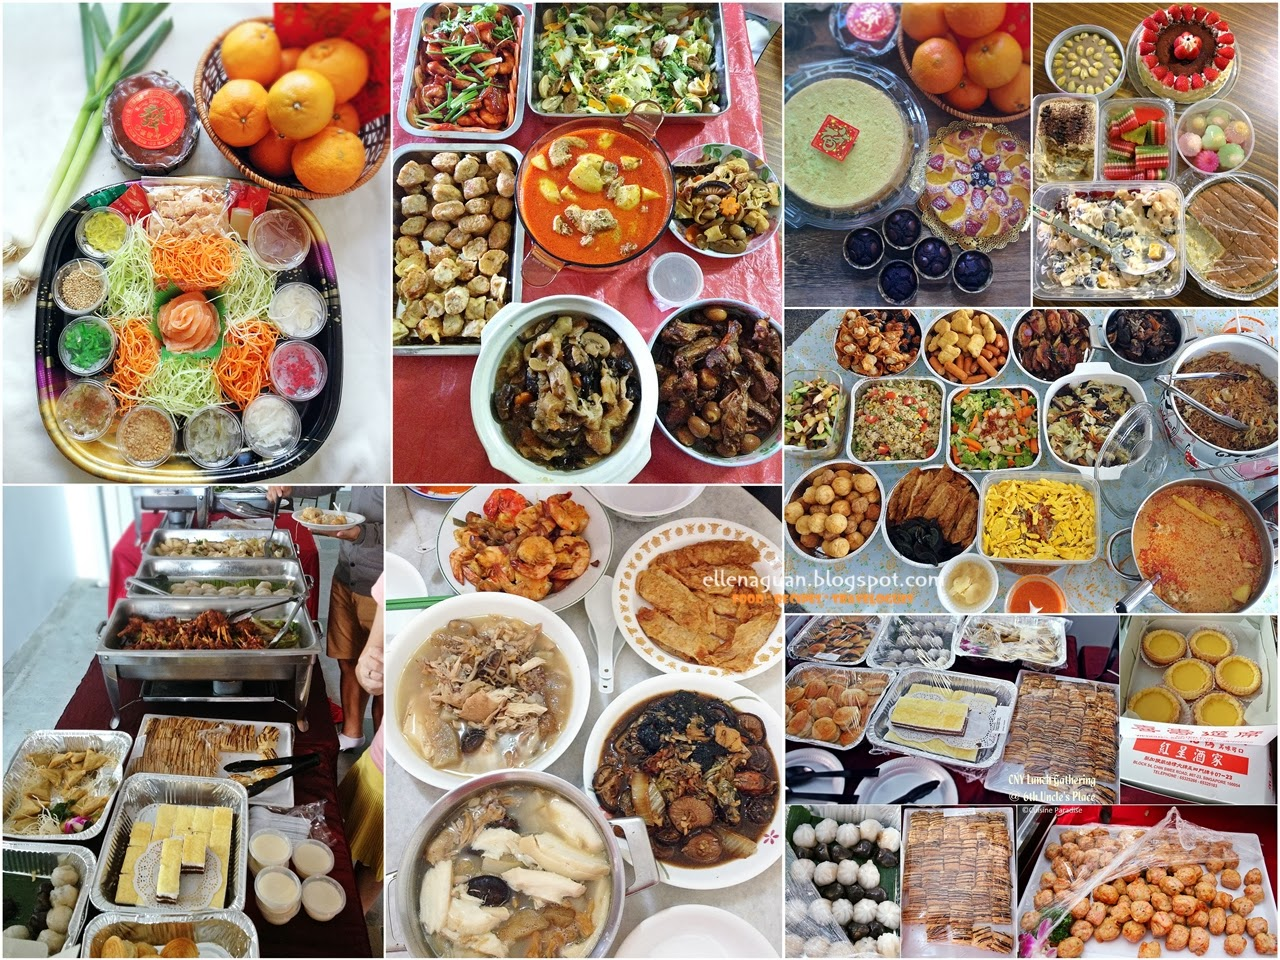 Cuisine paradise singapore food blog recipes reviews and travel 2014 chinese new year family gatherings forumfinder Choice Image